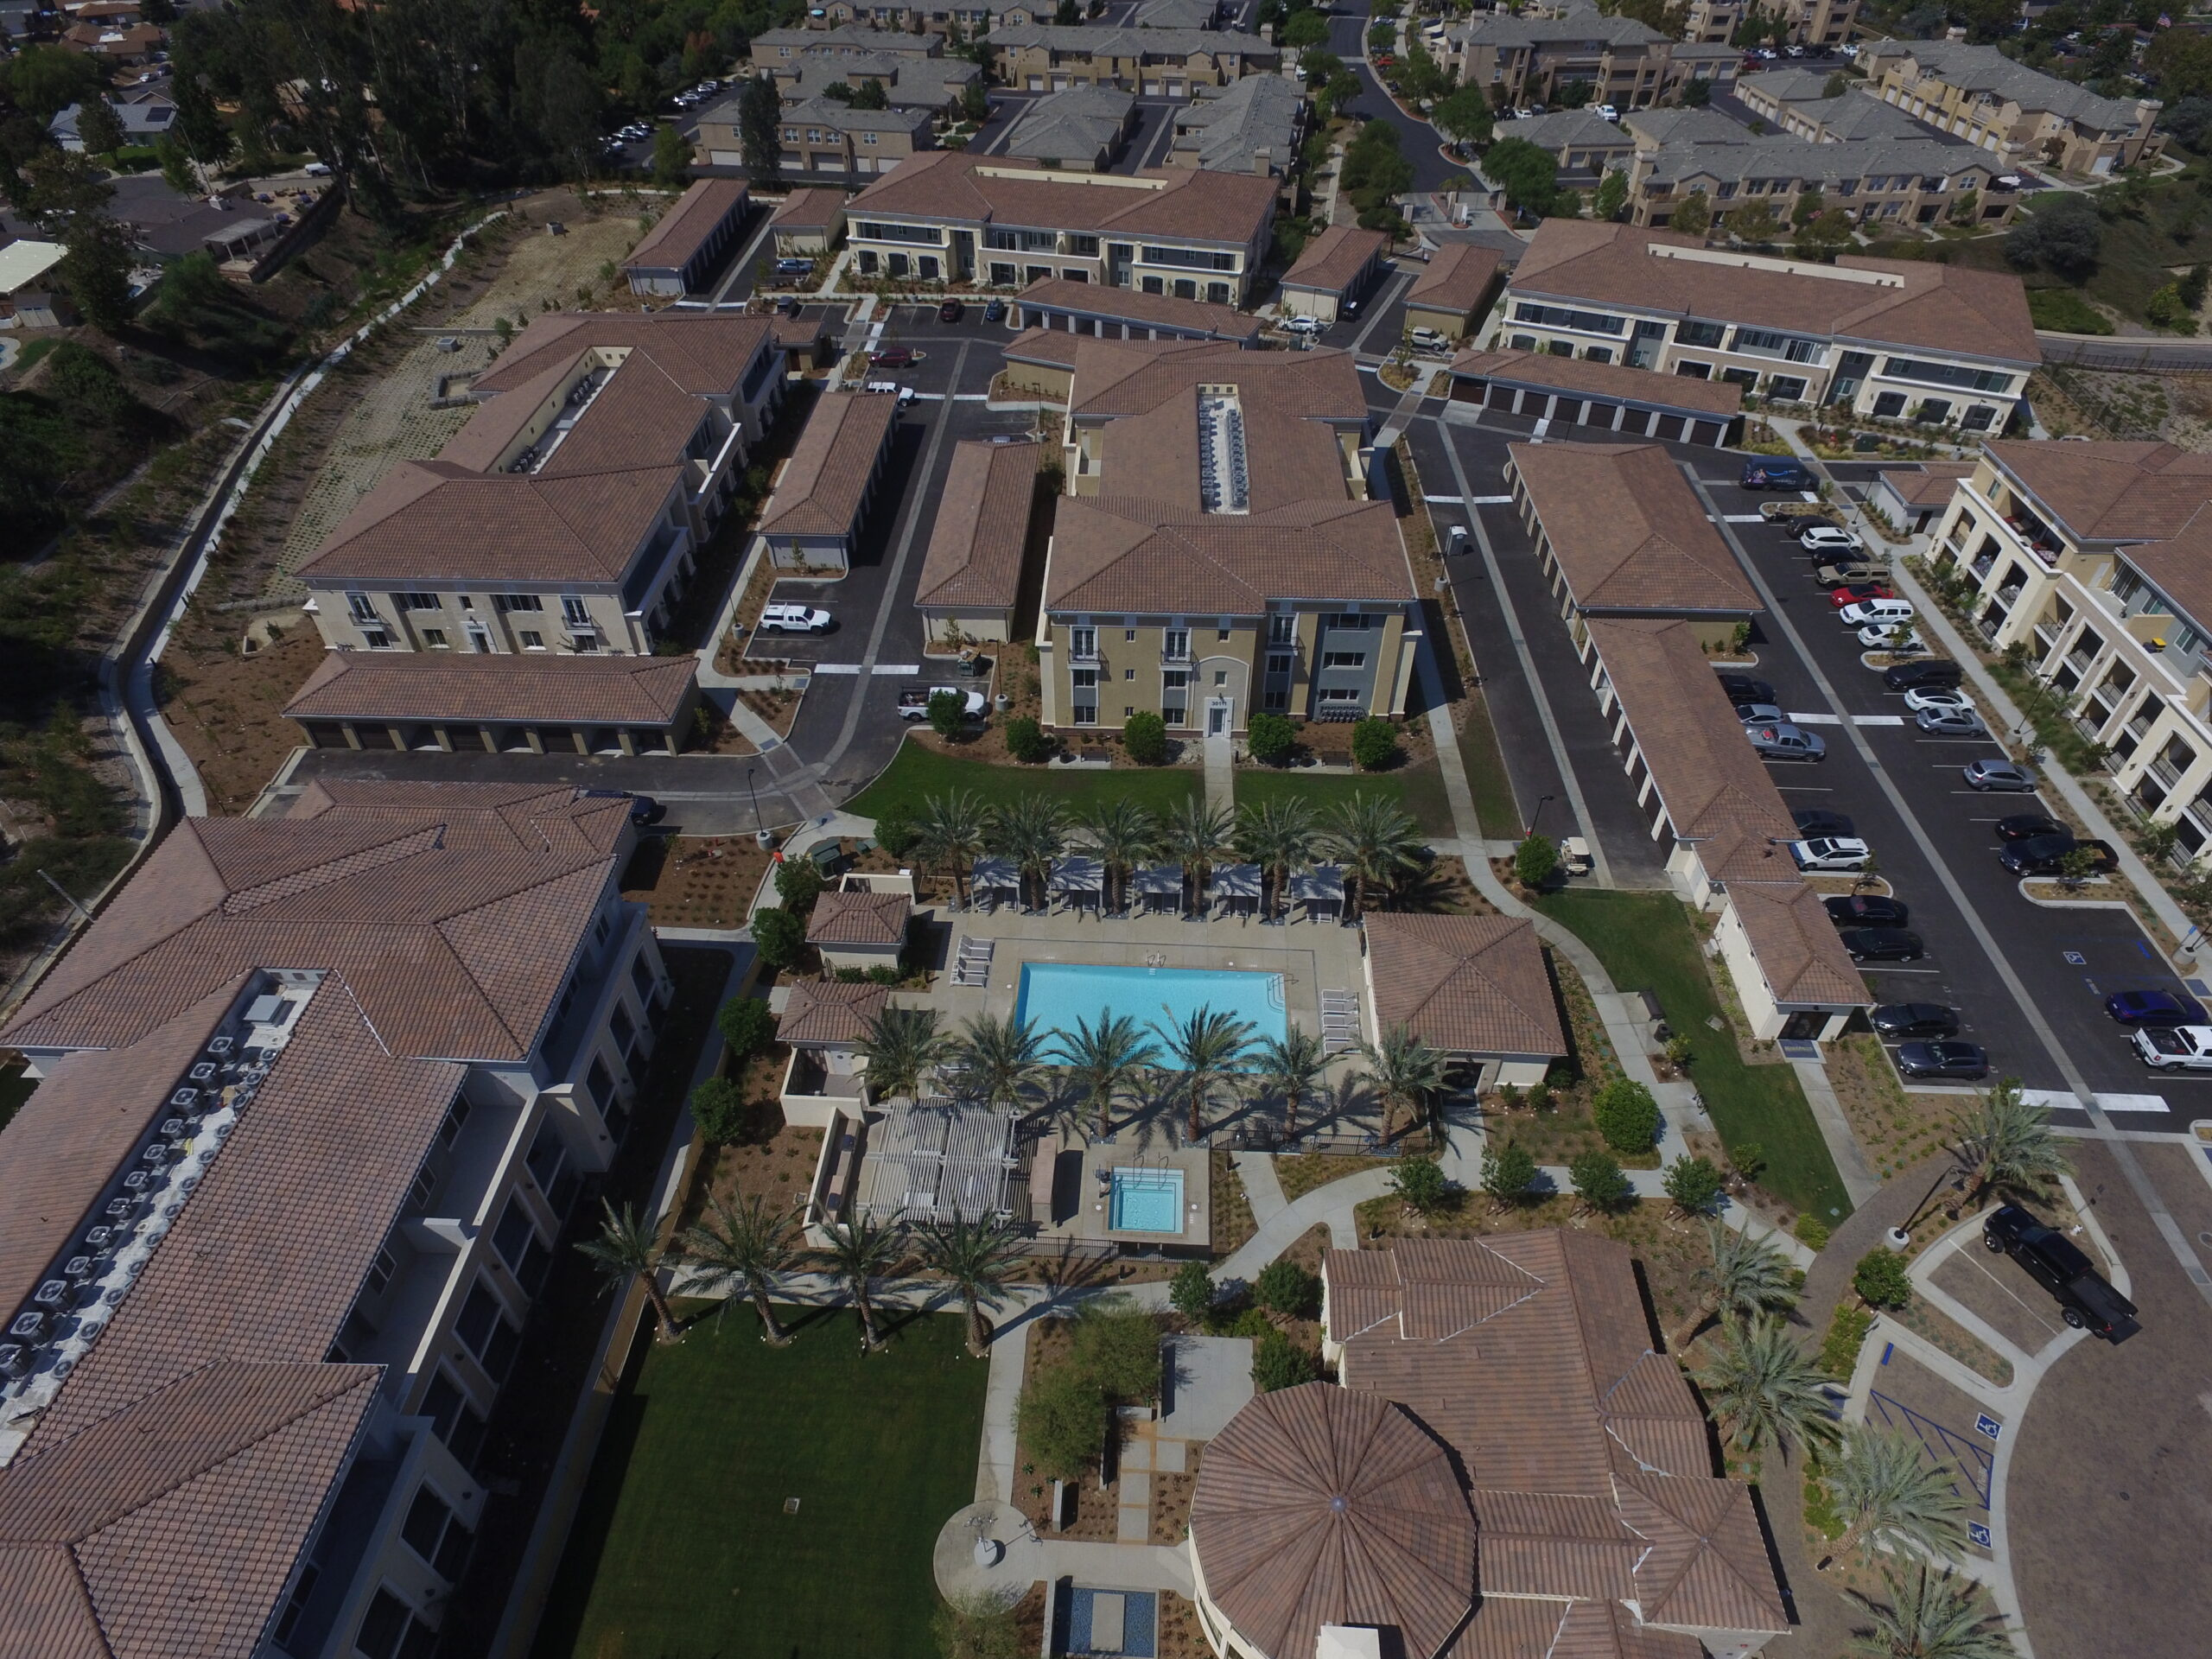 Pacific West Development Completes Buildings 3, 4, and 5 at Rendezvous Apartments